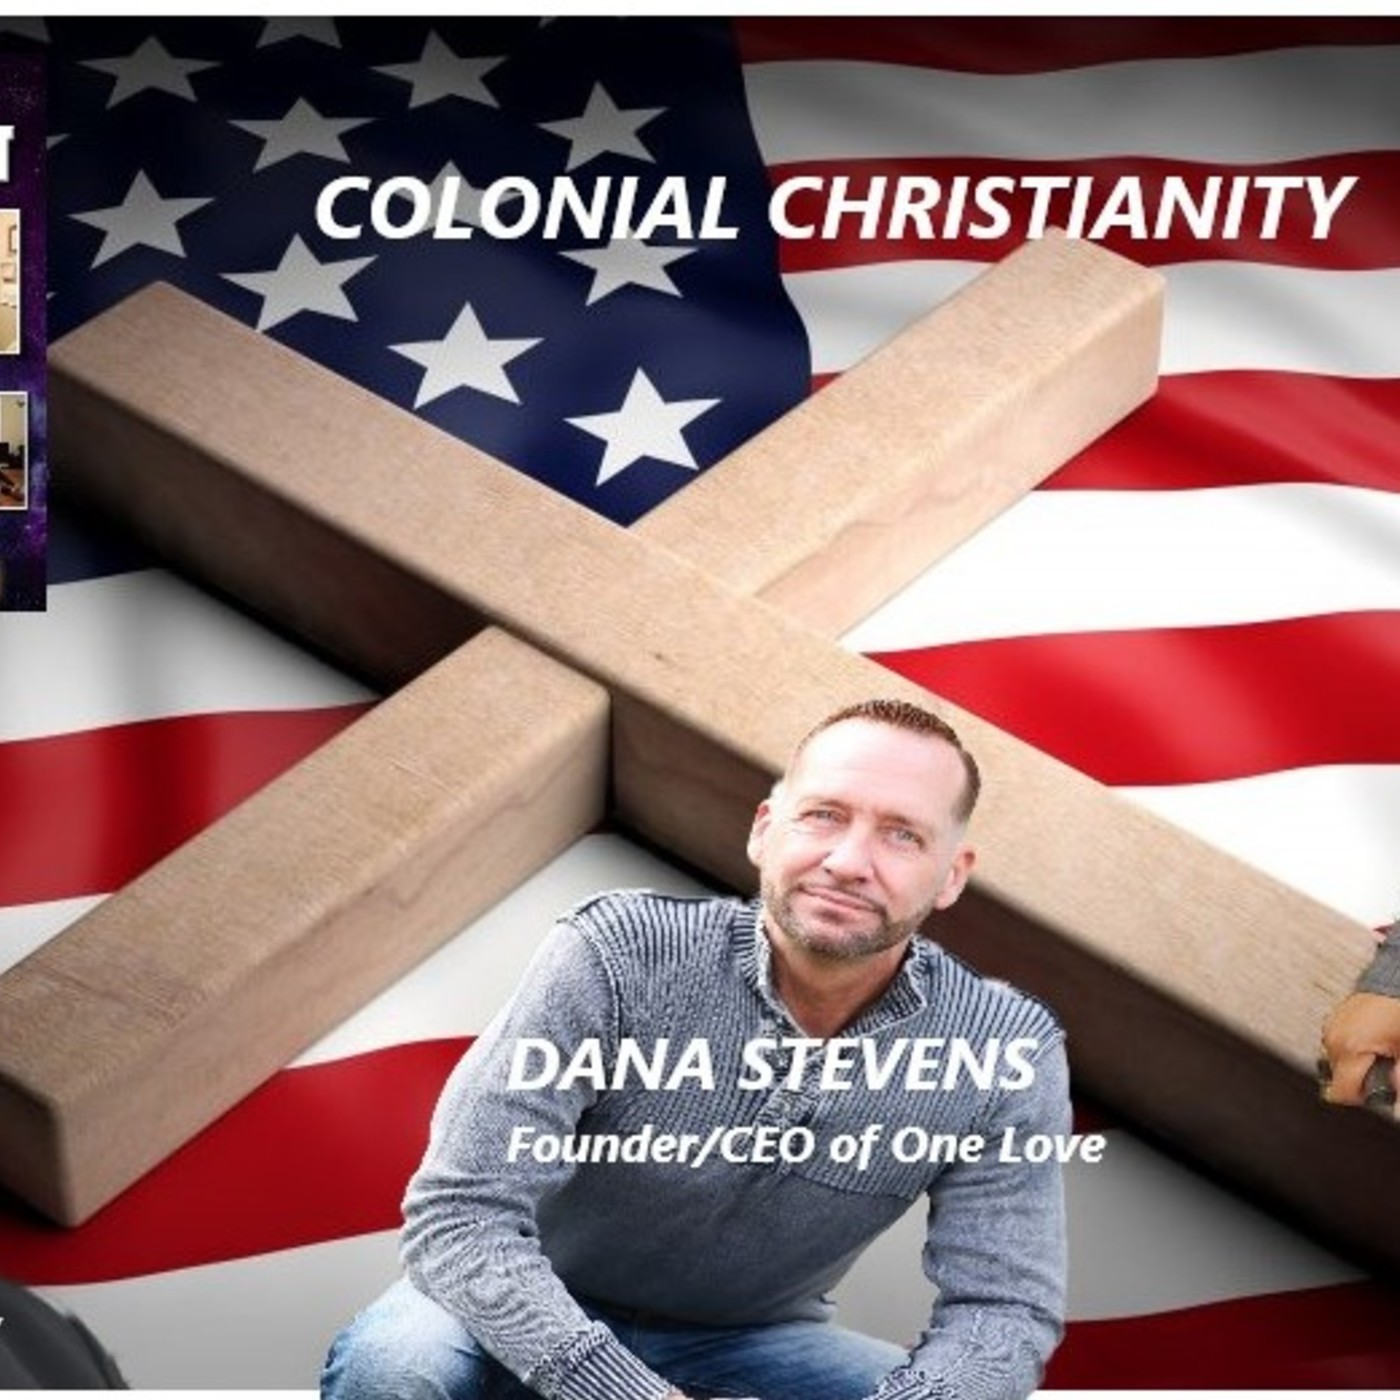 Behind the Blue Curtain: Colonial Christianity